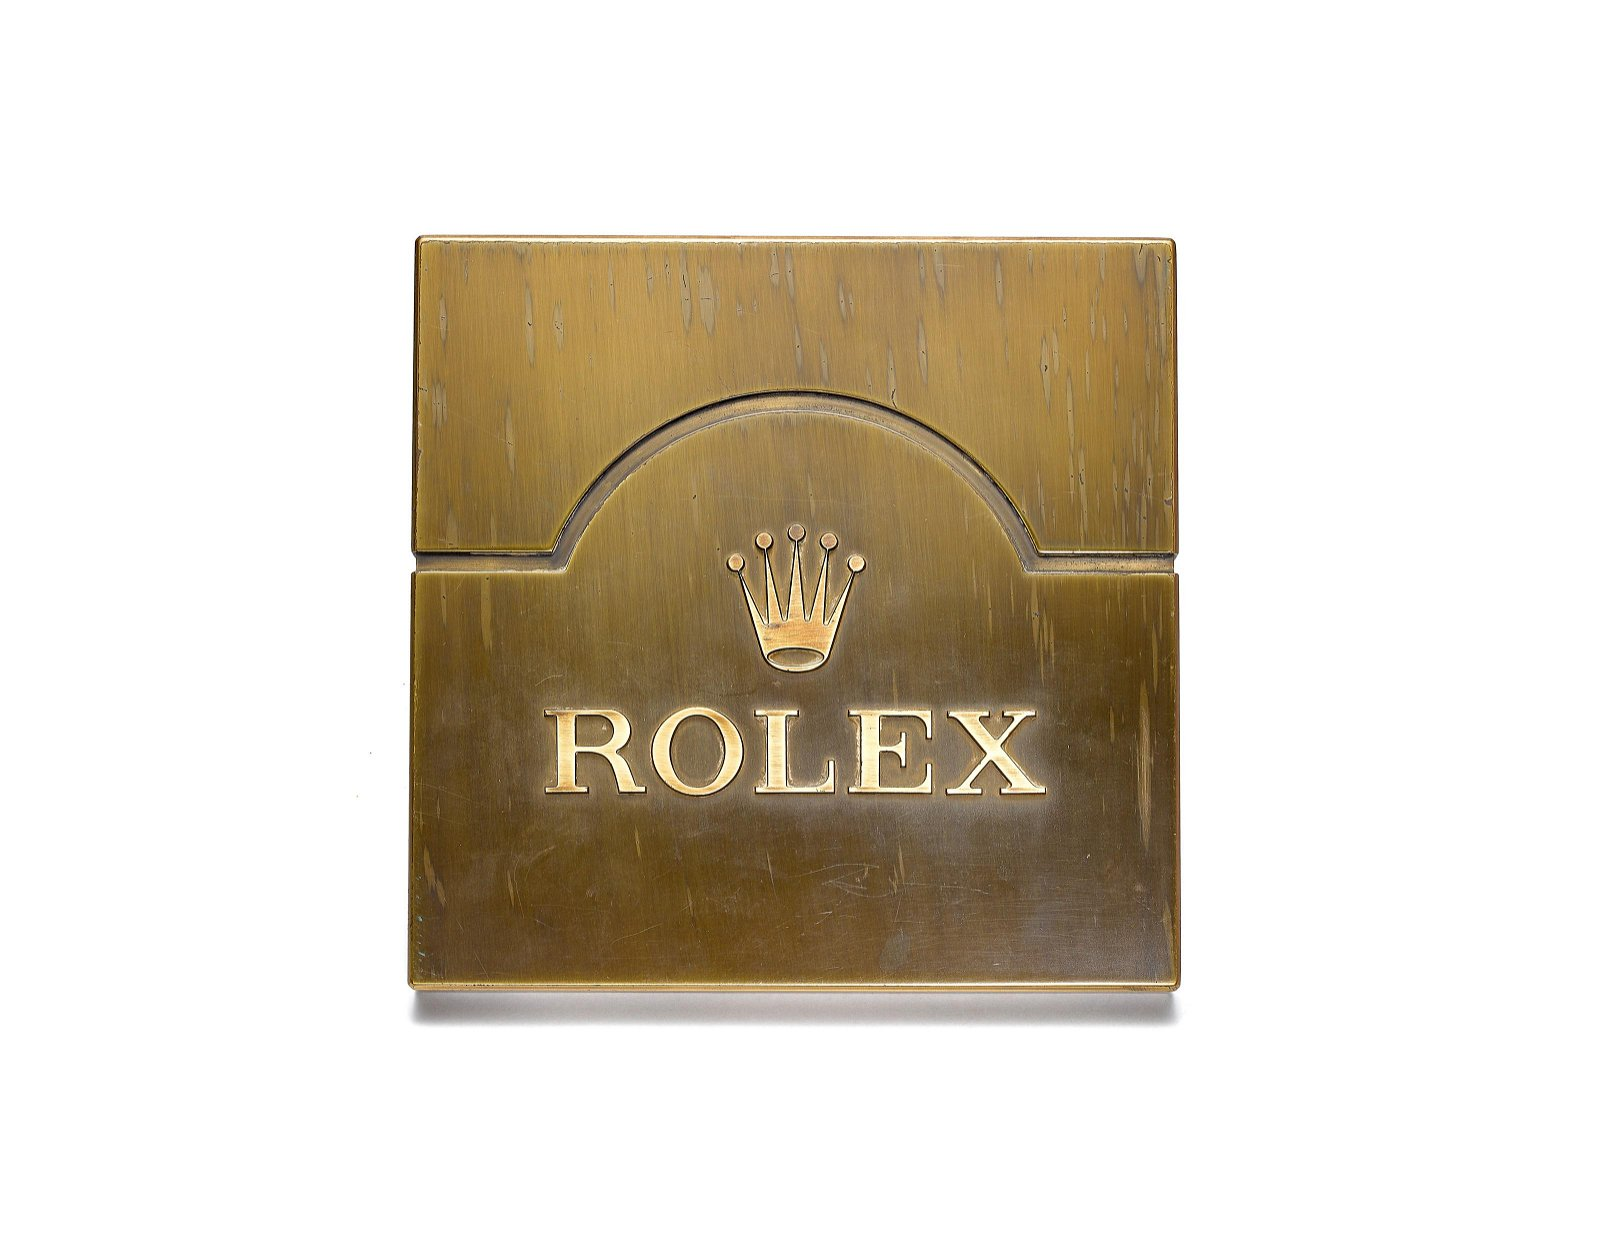 ROLEX, AN UNUSUAL BRASS DOOR KNOB